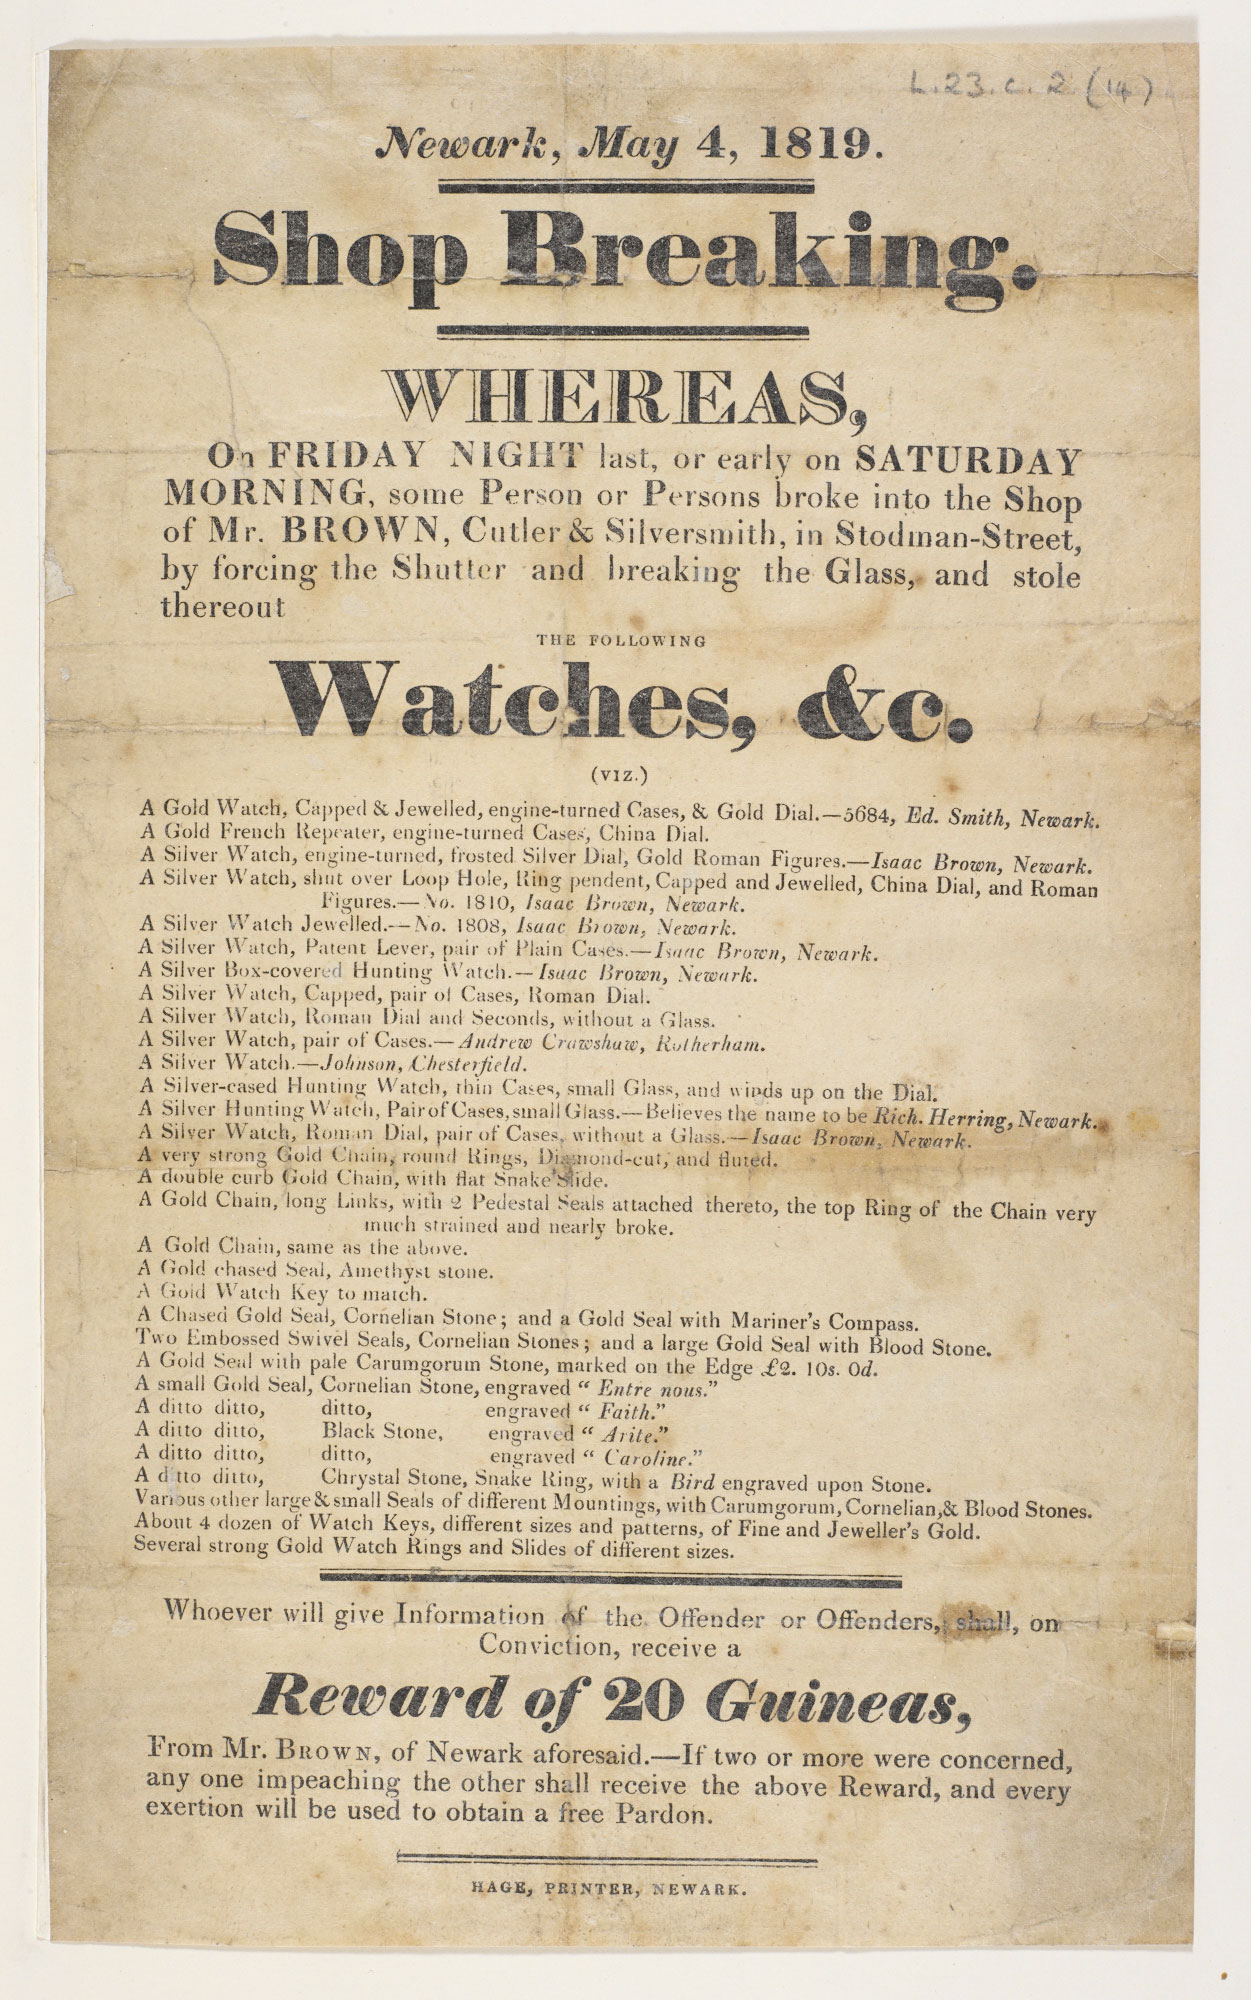 A broadside on riots in Newark